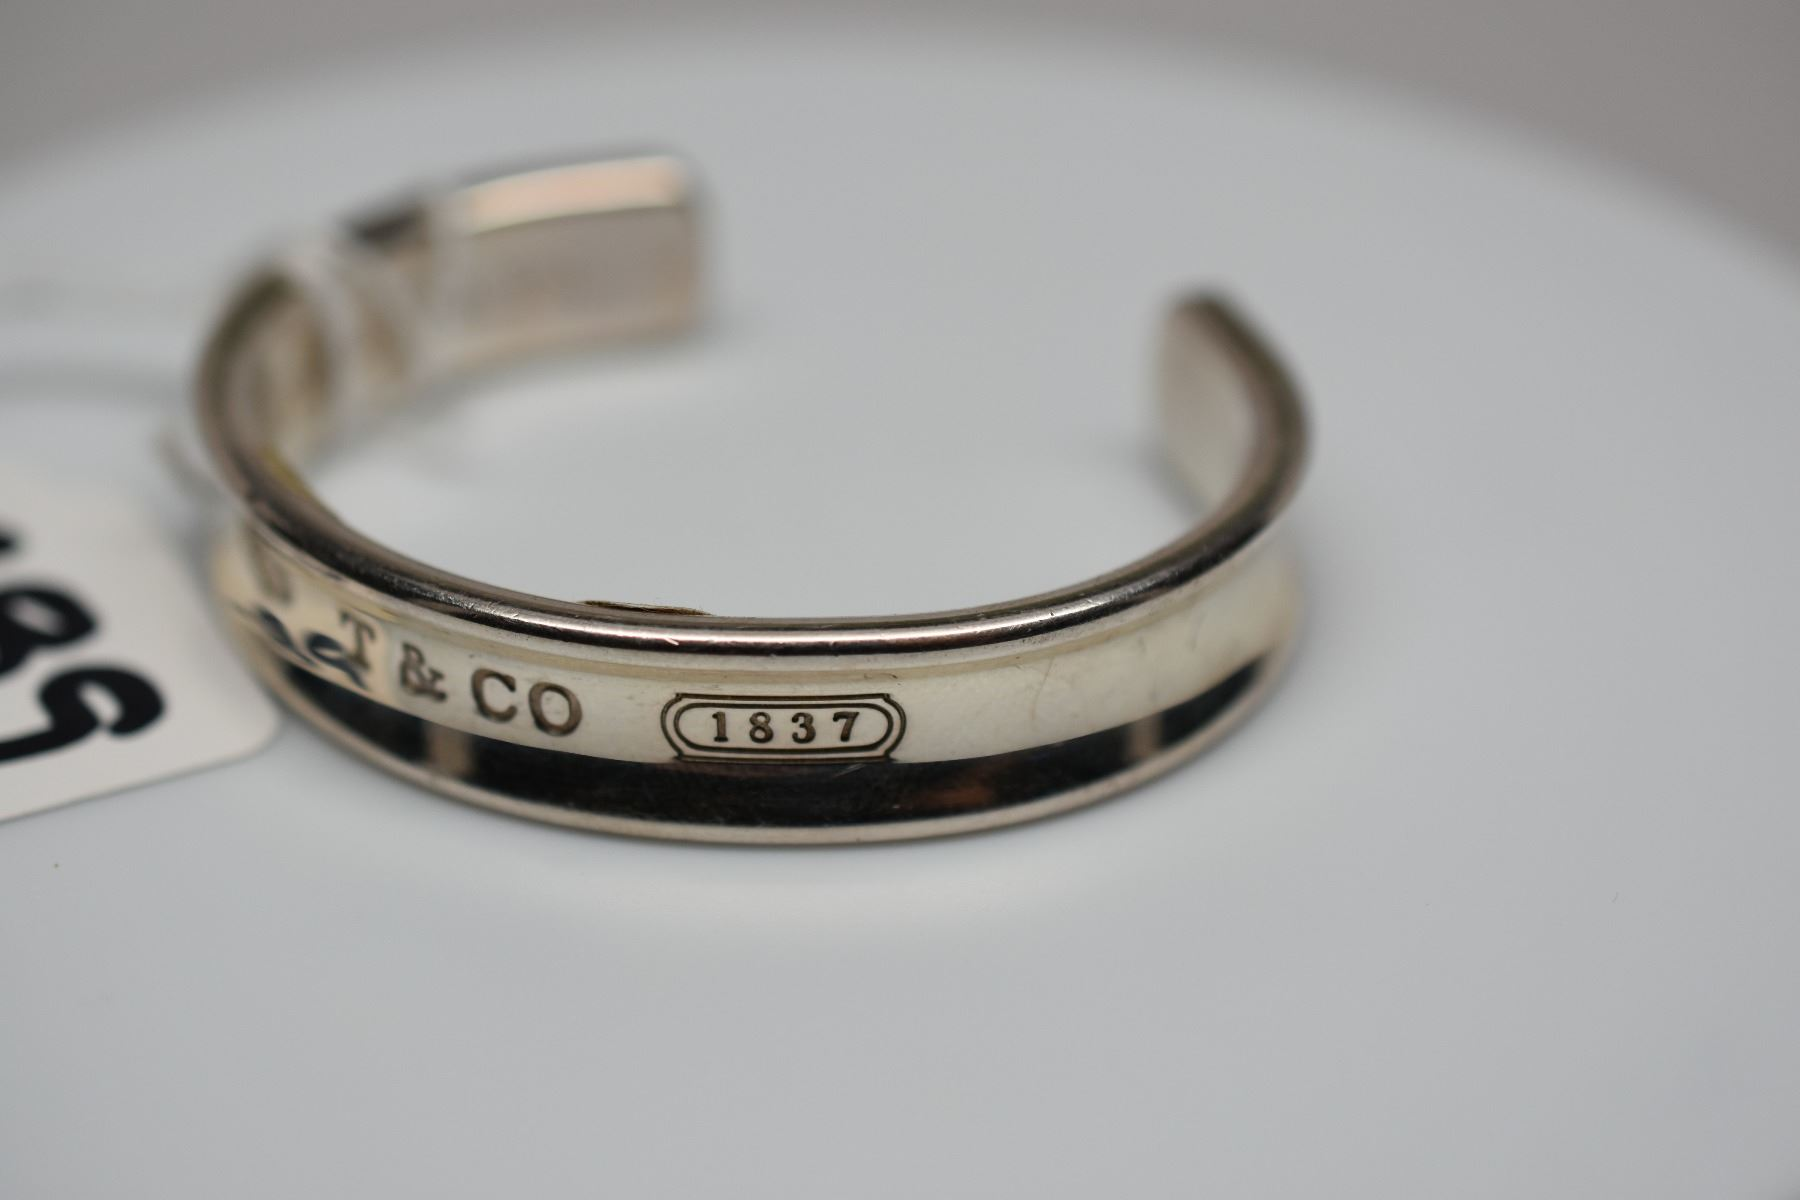 e745bc0f4 Tiffany & Co. Sterling Silver Bangle Bracelet 2 1/2